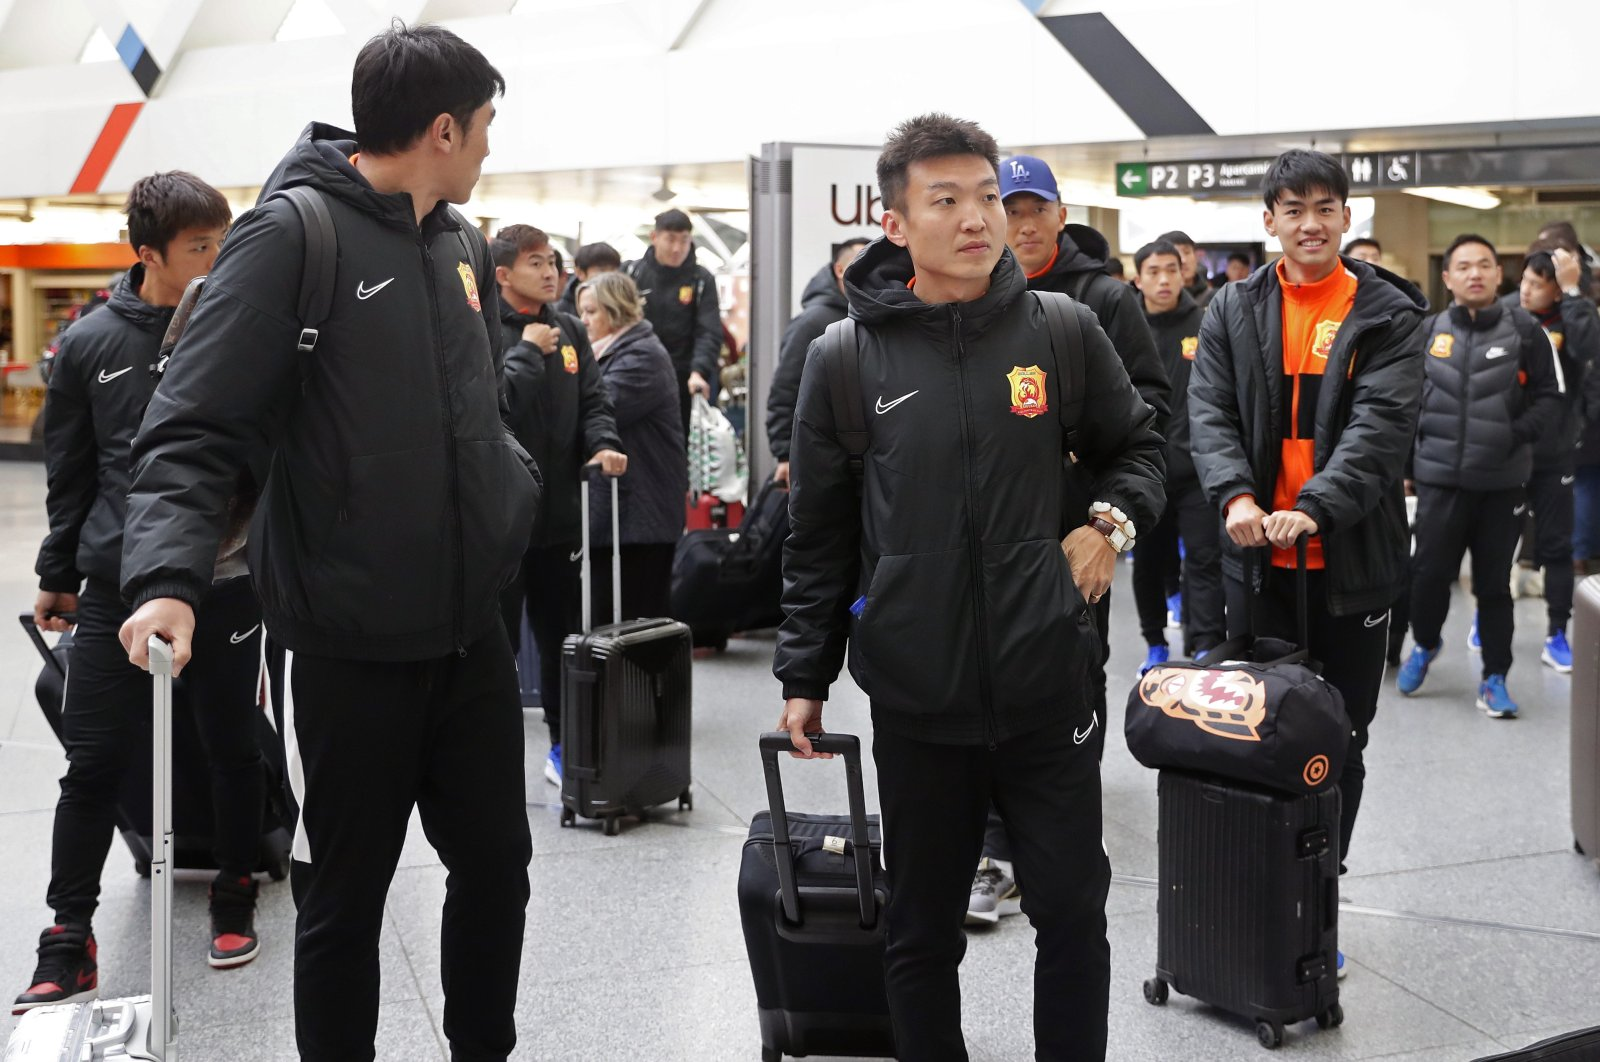 Players of the Chinese Super League team Wuhan Zall arrive at the Atocha train station in Madrid, Spain, Saturday, Feb. 29, 2020. (AP Photo)